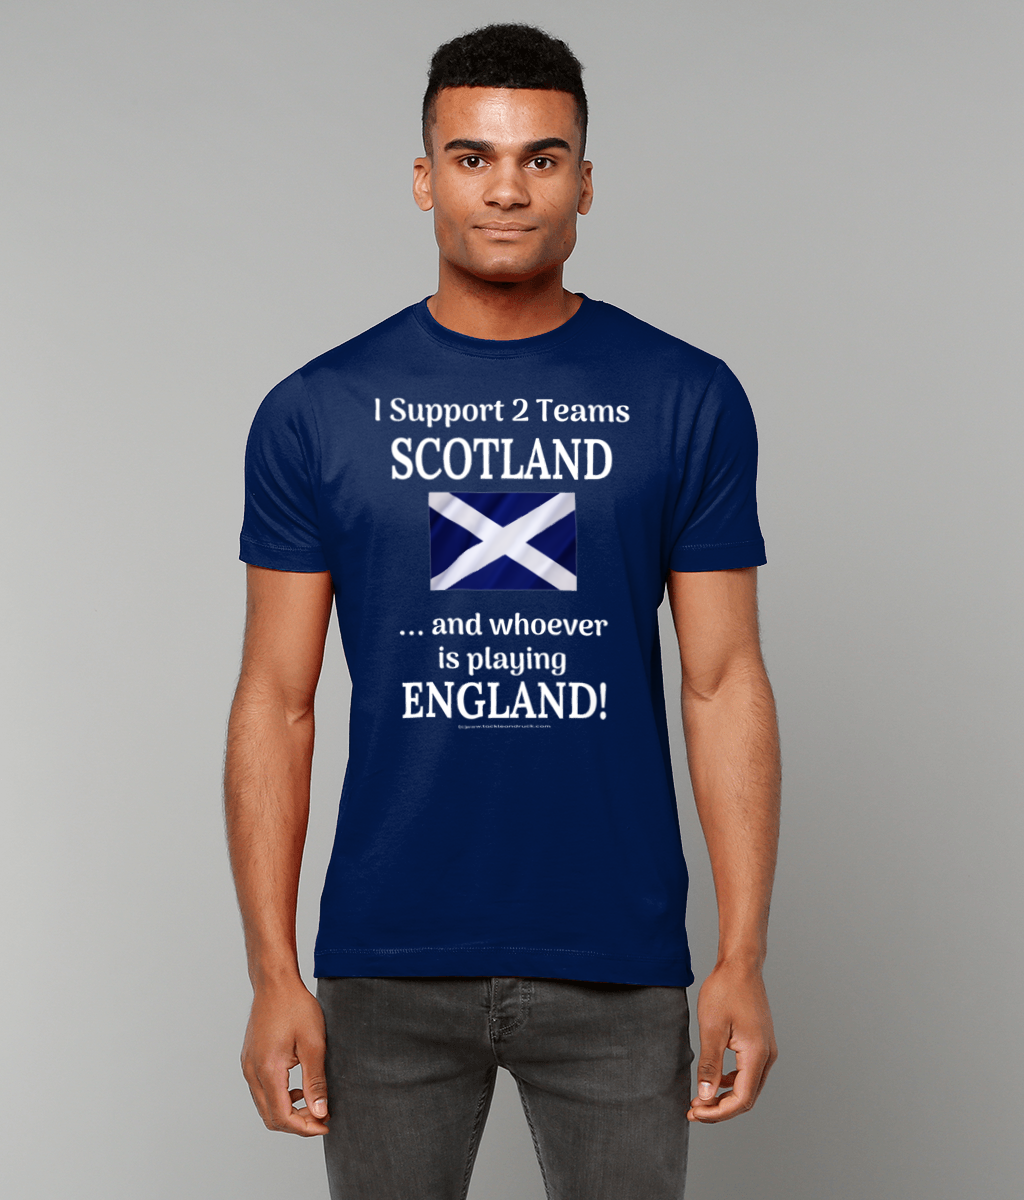 Men's Rugby T Shirt - I Support 2 Teams Scotland & Whoever's Playing England